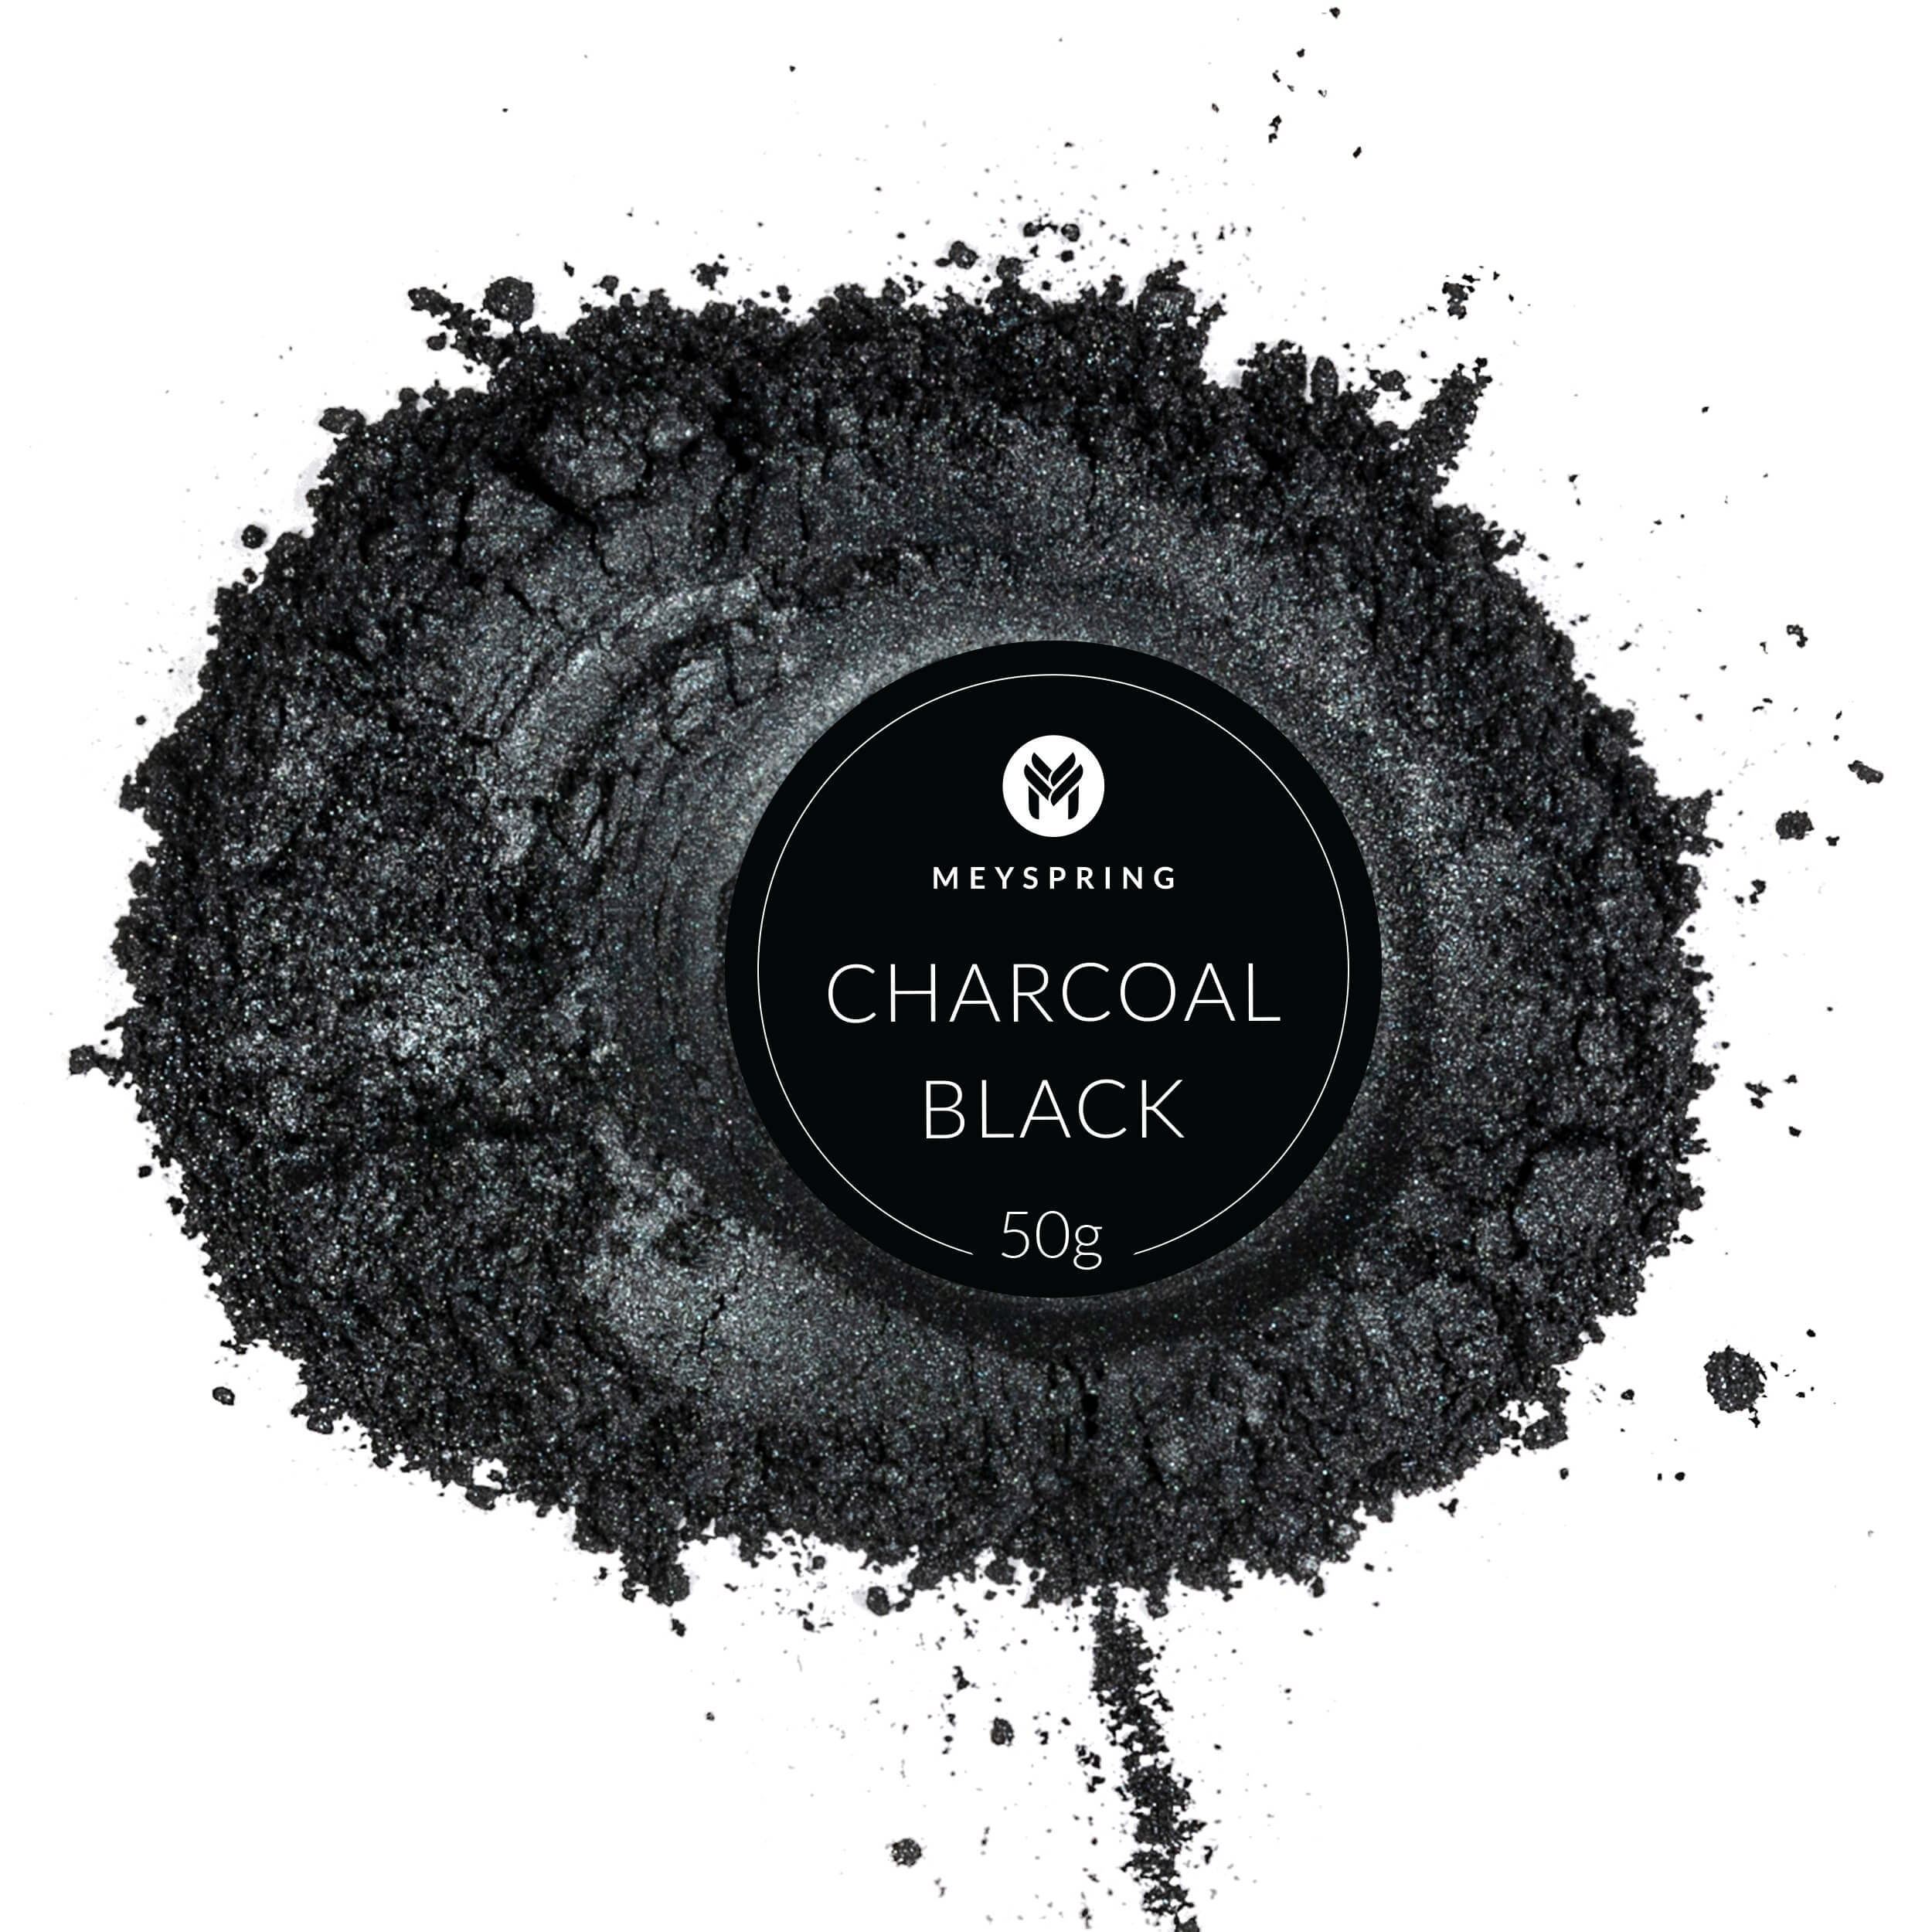 Meyspring charcoal black epoxy resin color pigment mica powder for resin art